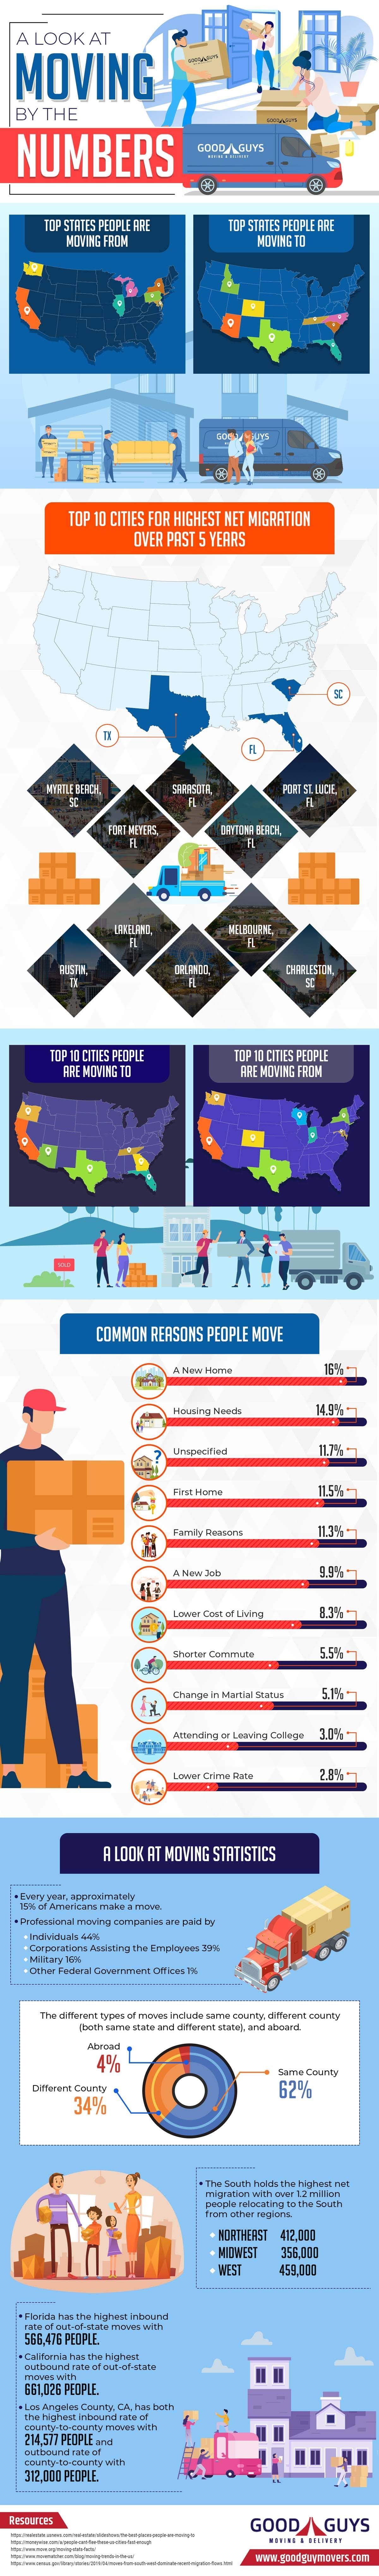 A Look at Moving by the Numbers #infographic